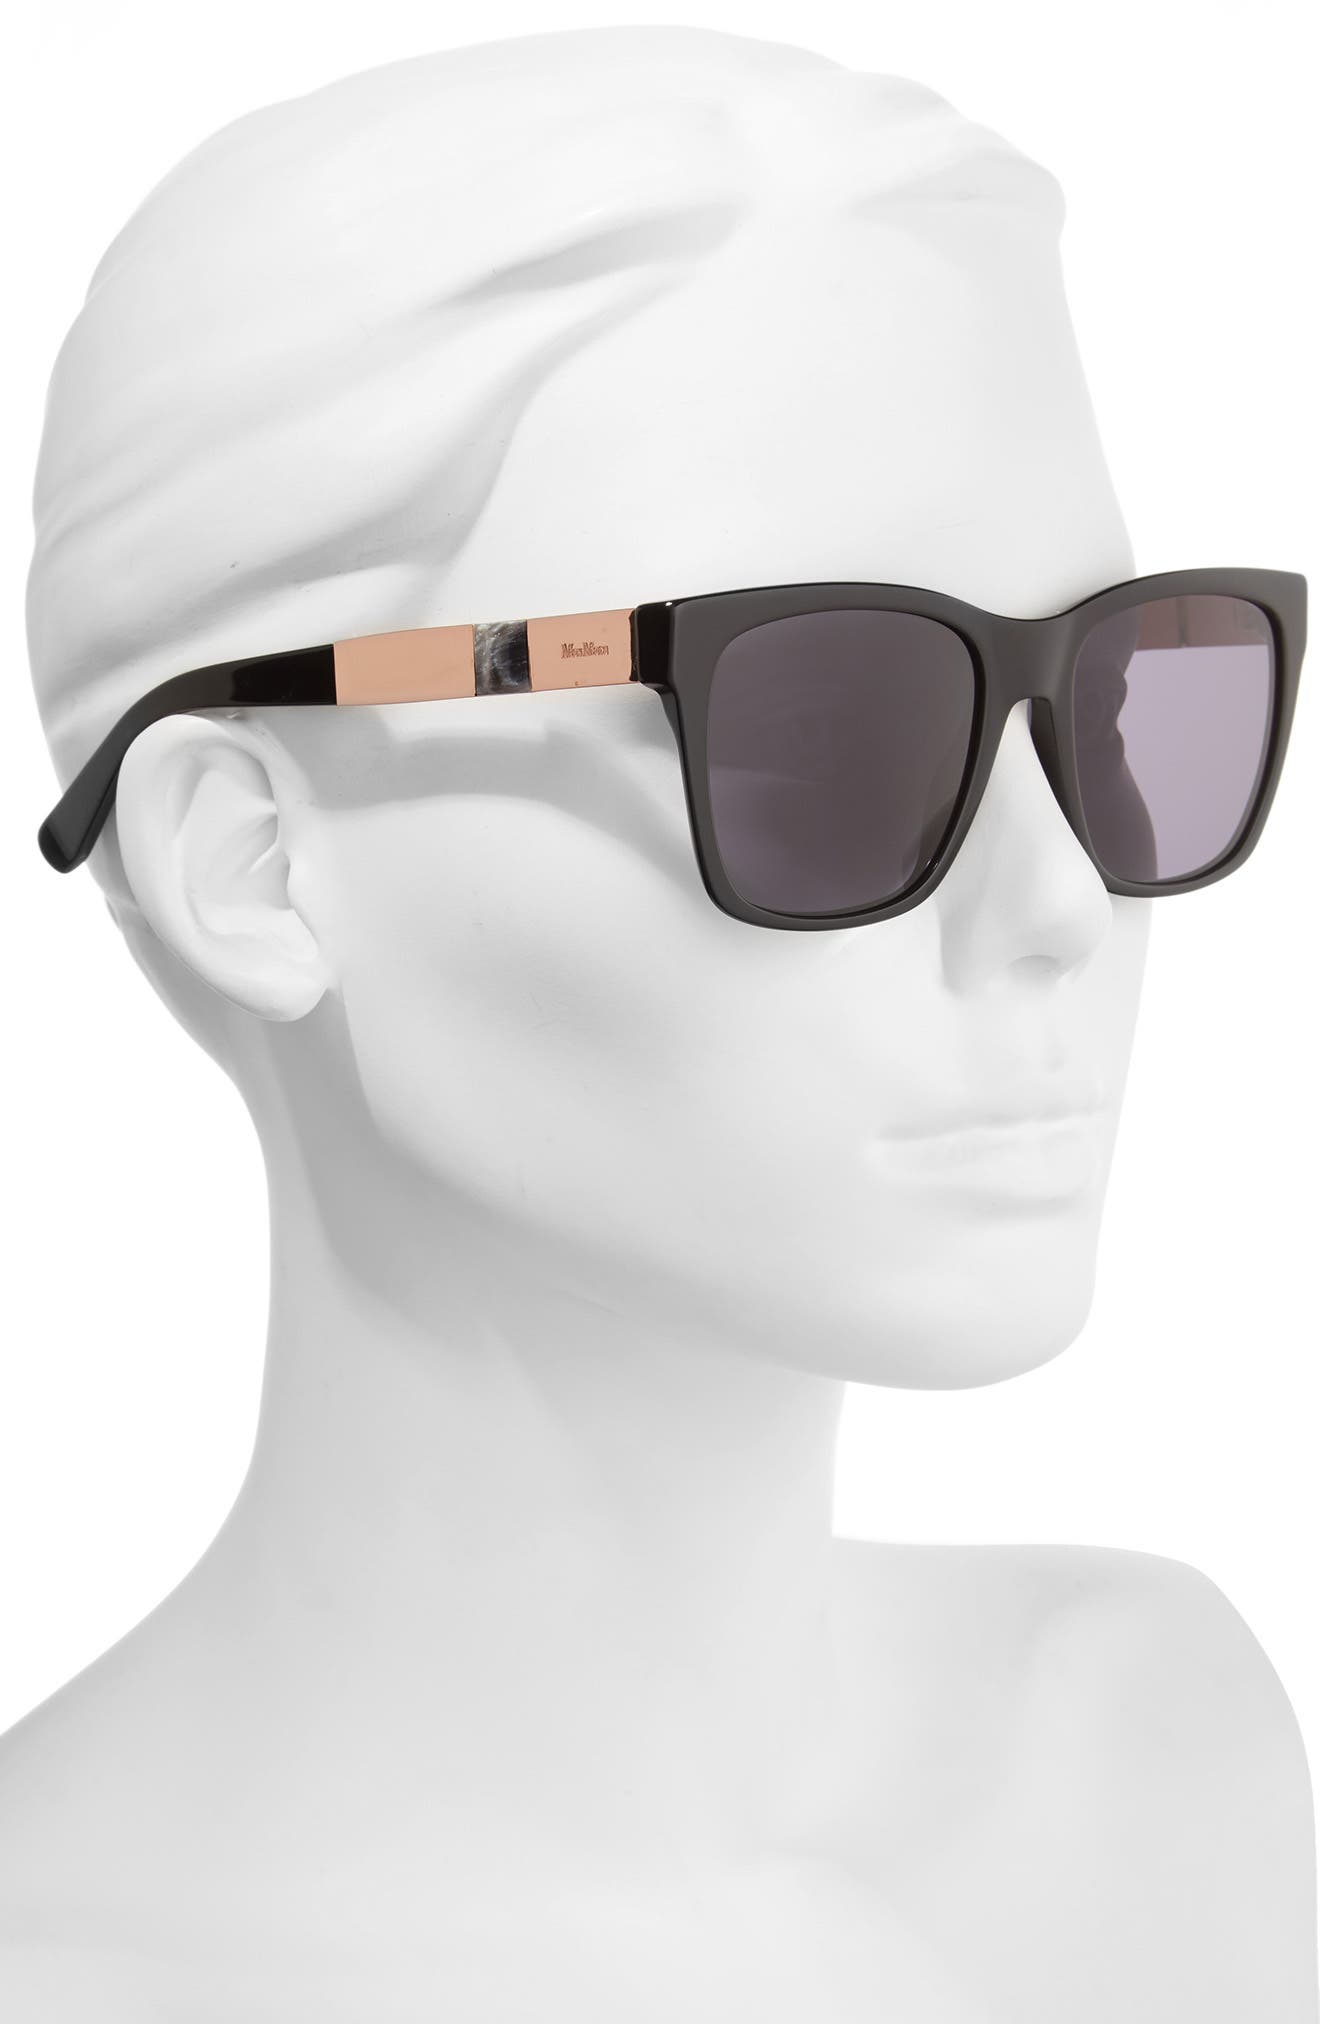 Stone 54mm Gradient Sunglasses,                             Alternate thumbnail 2, color,                             001